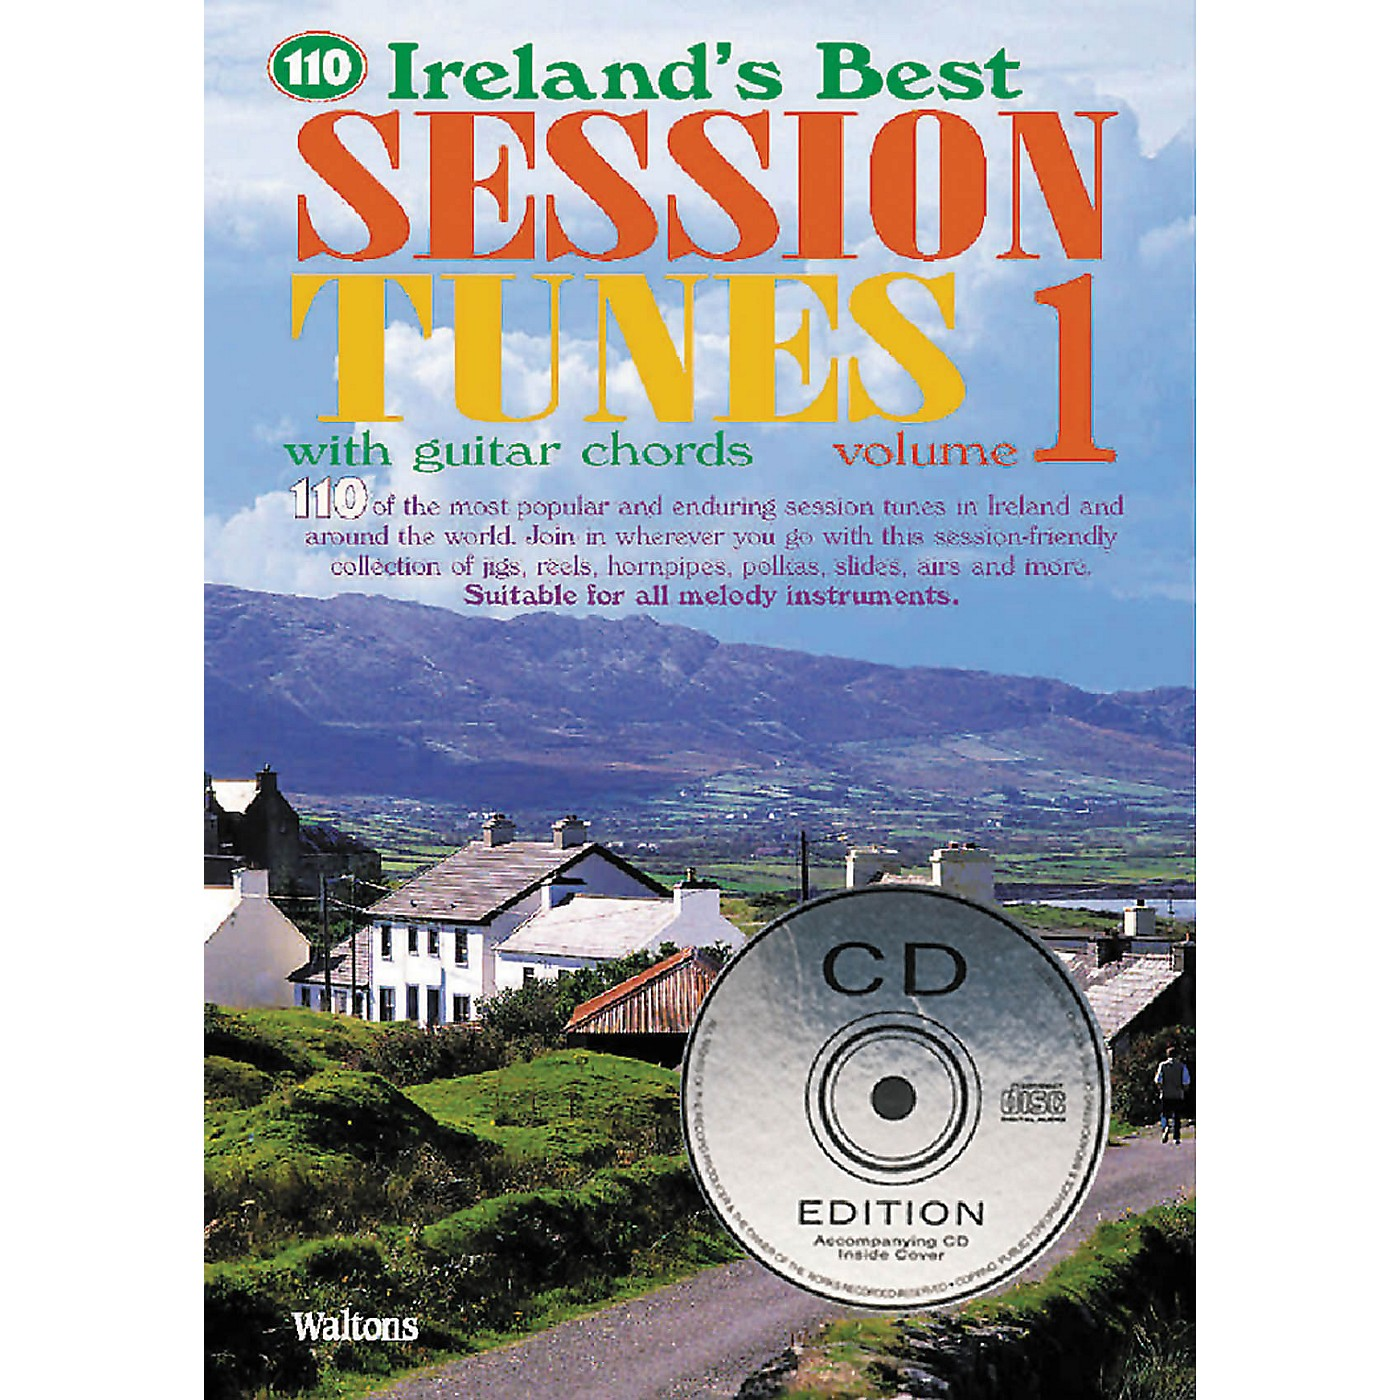 Waltons 110 Ireland's Best Session Tunes - Volume 1 Waltons Irish Music Books Series Softcover with CD thumbnail